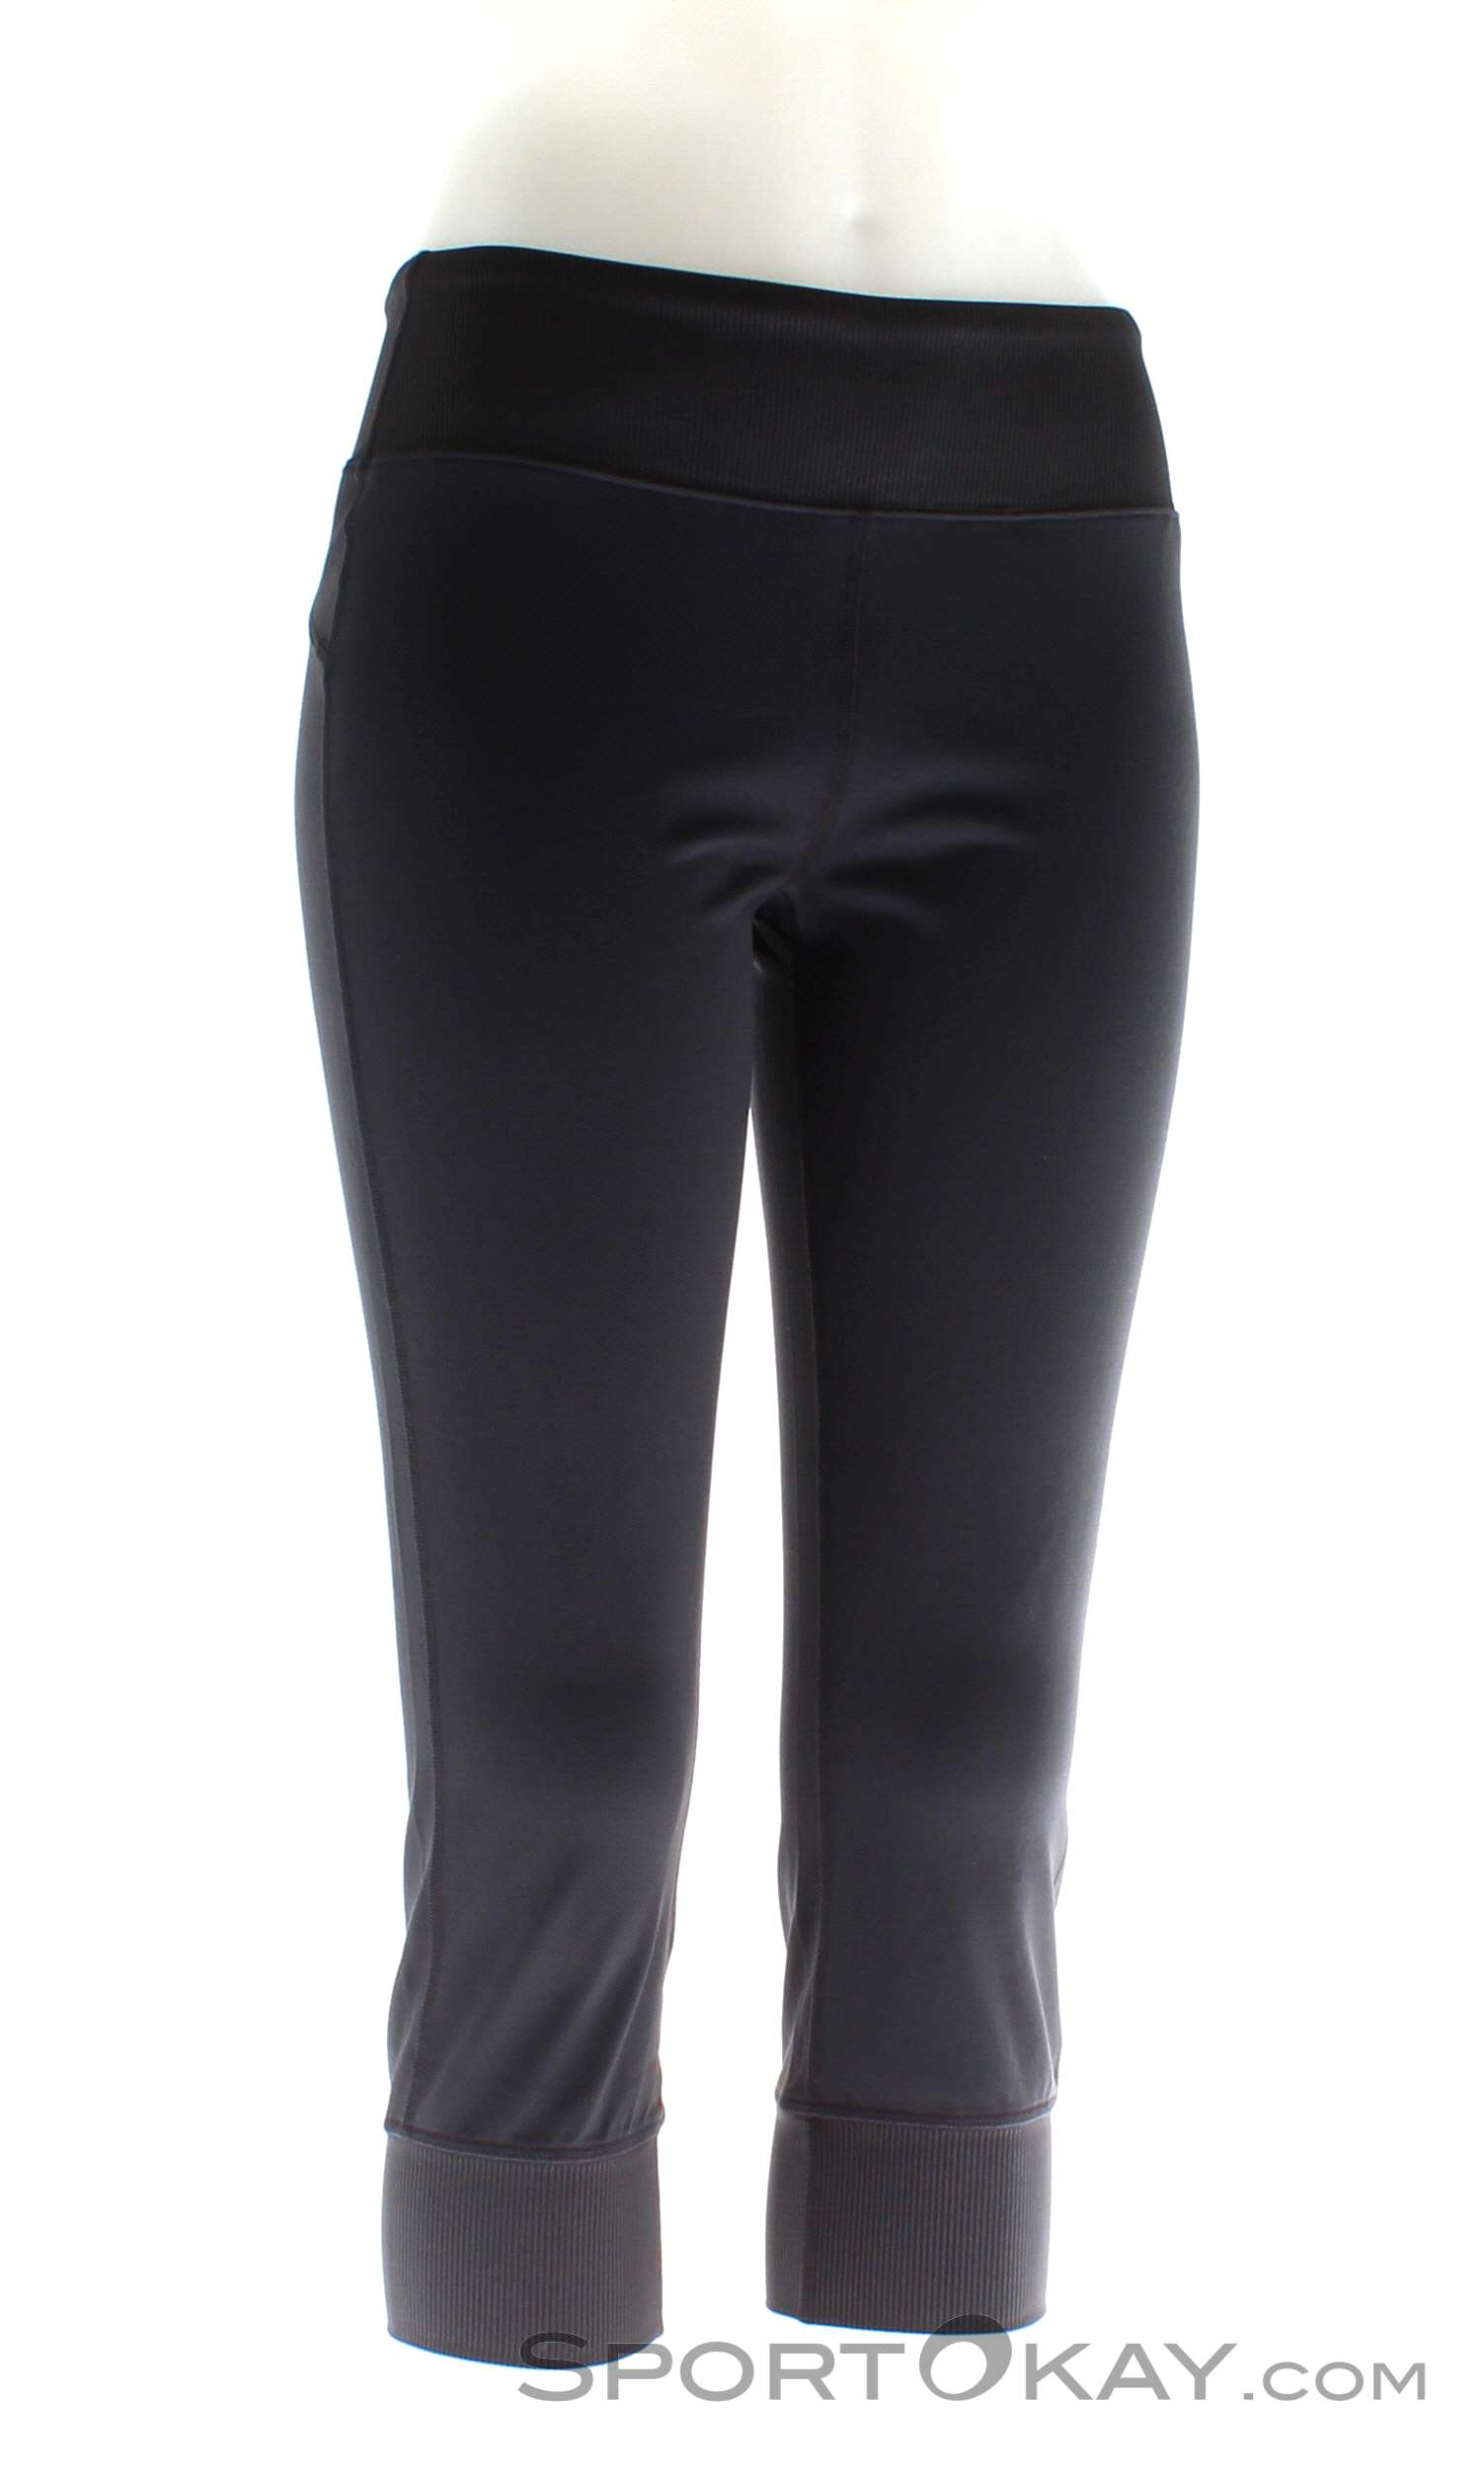 Black Diamond Levitation Capris Damen Kletterhose, Black Diamond, Schwarz, , Damen, 0056-10609, 5637580031, 793661299318, N1-01.jpg